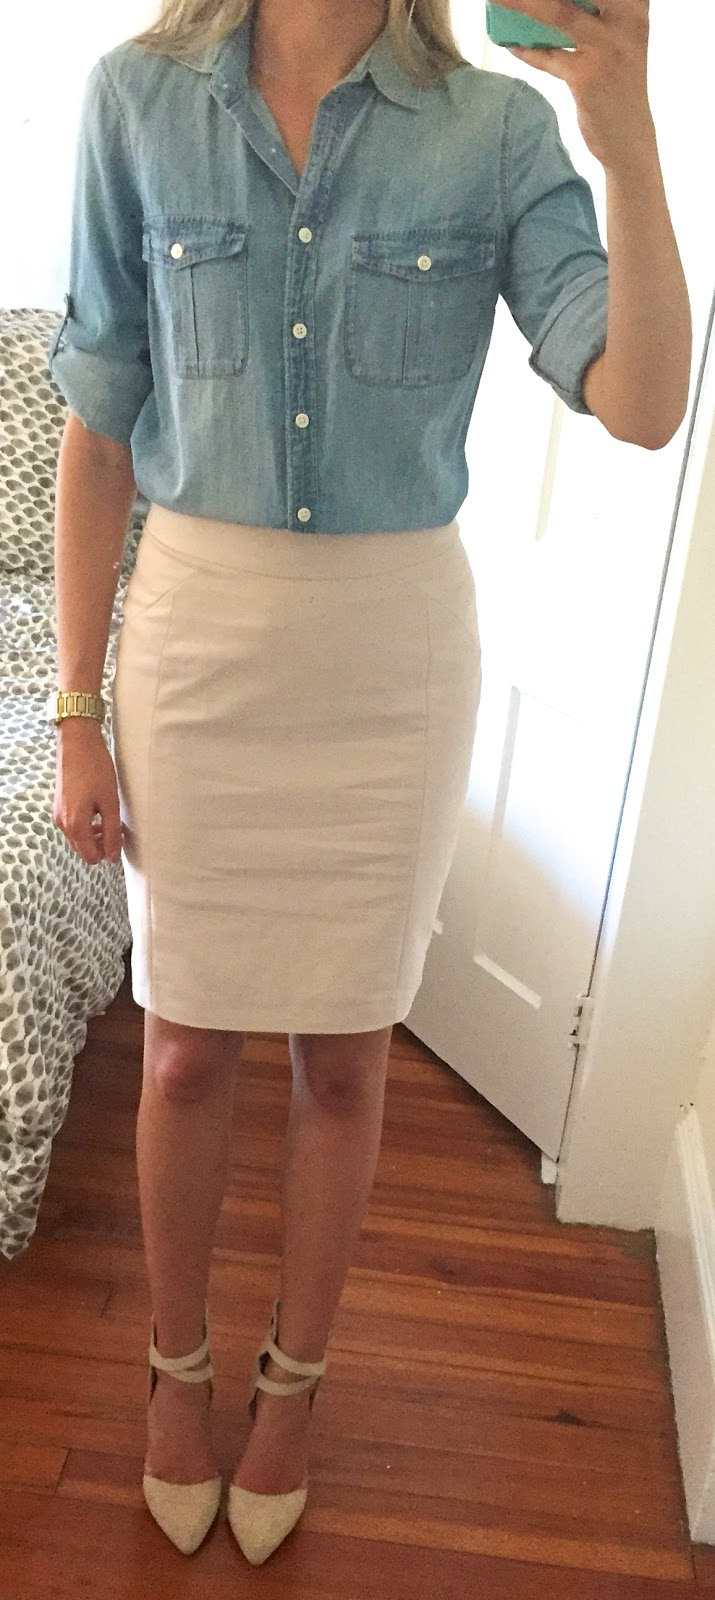 Outfit Post Sister Week Chambray Shirt Cream Pencil Skirt Beige Ankle Strap Heels